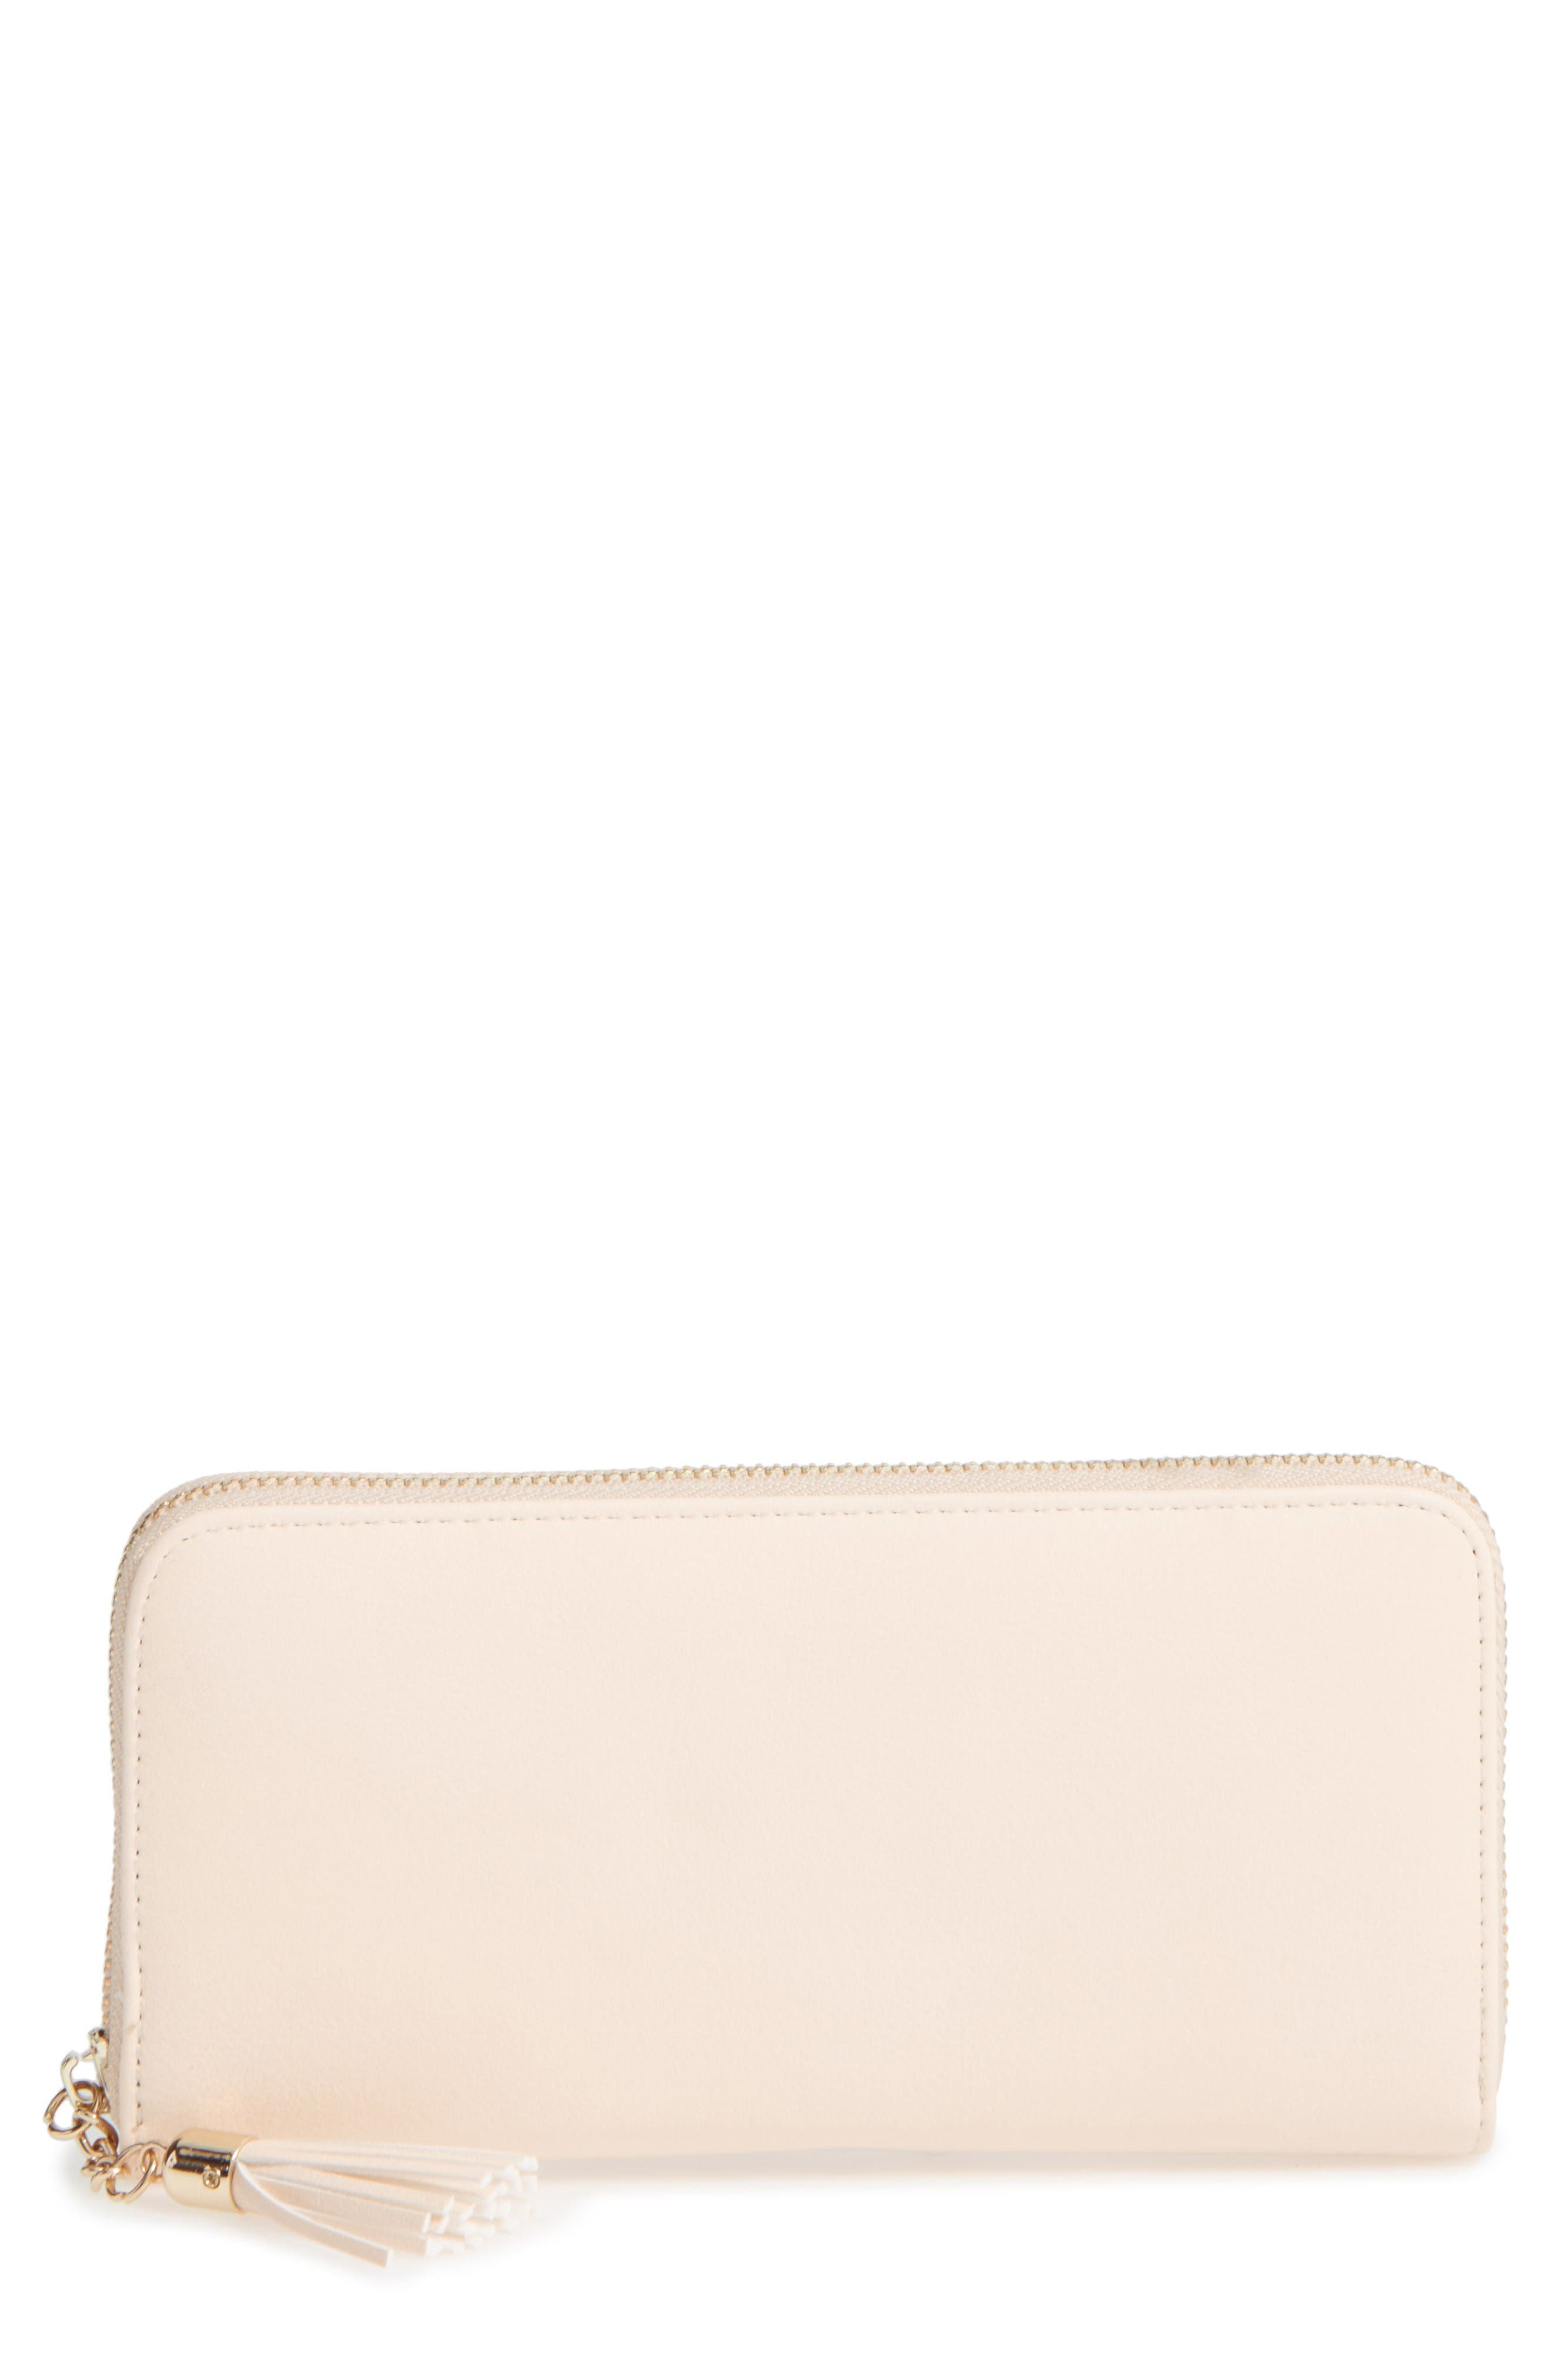 Alternate Image 1 Selected - Emperia Marsha Faux Leather Wallet